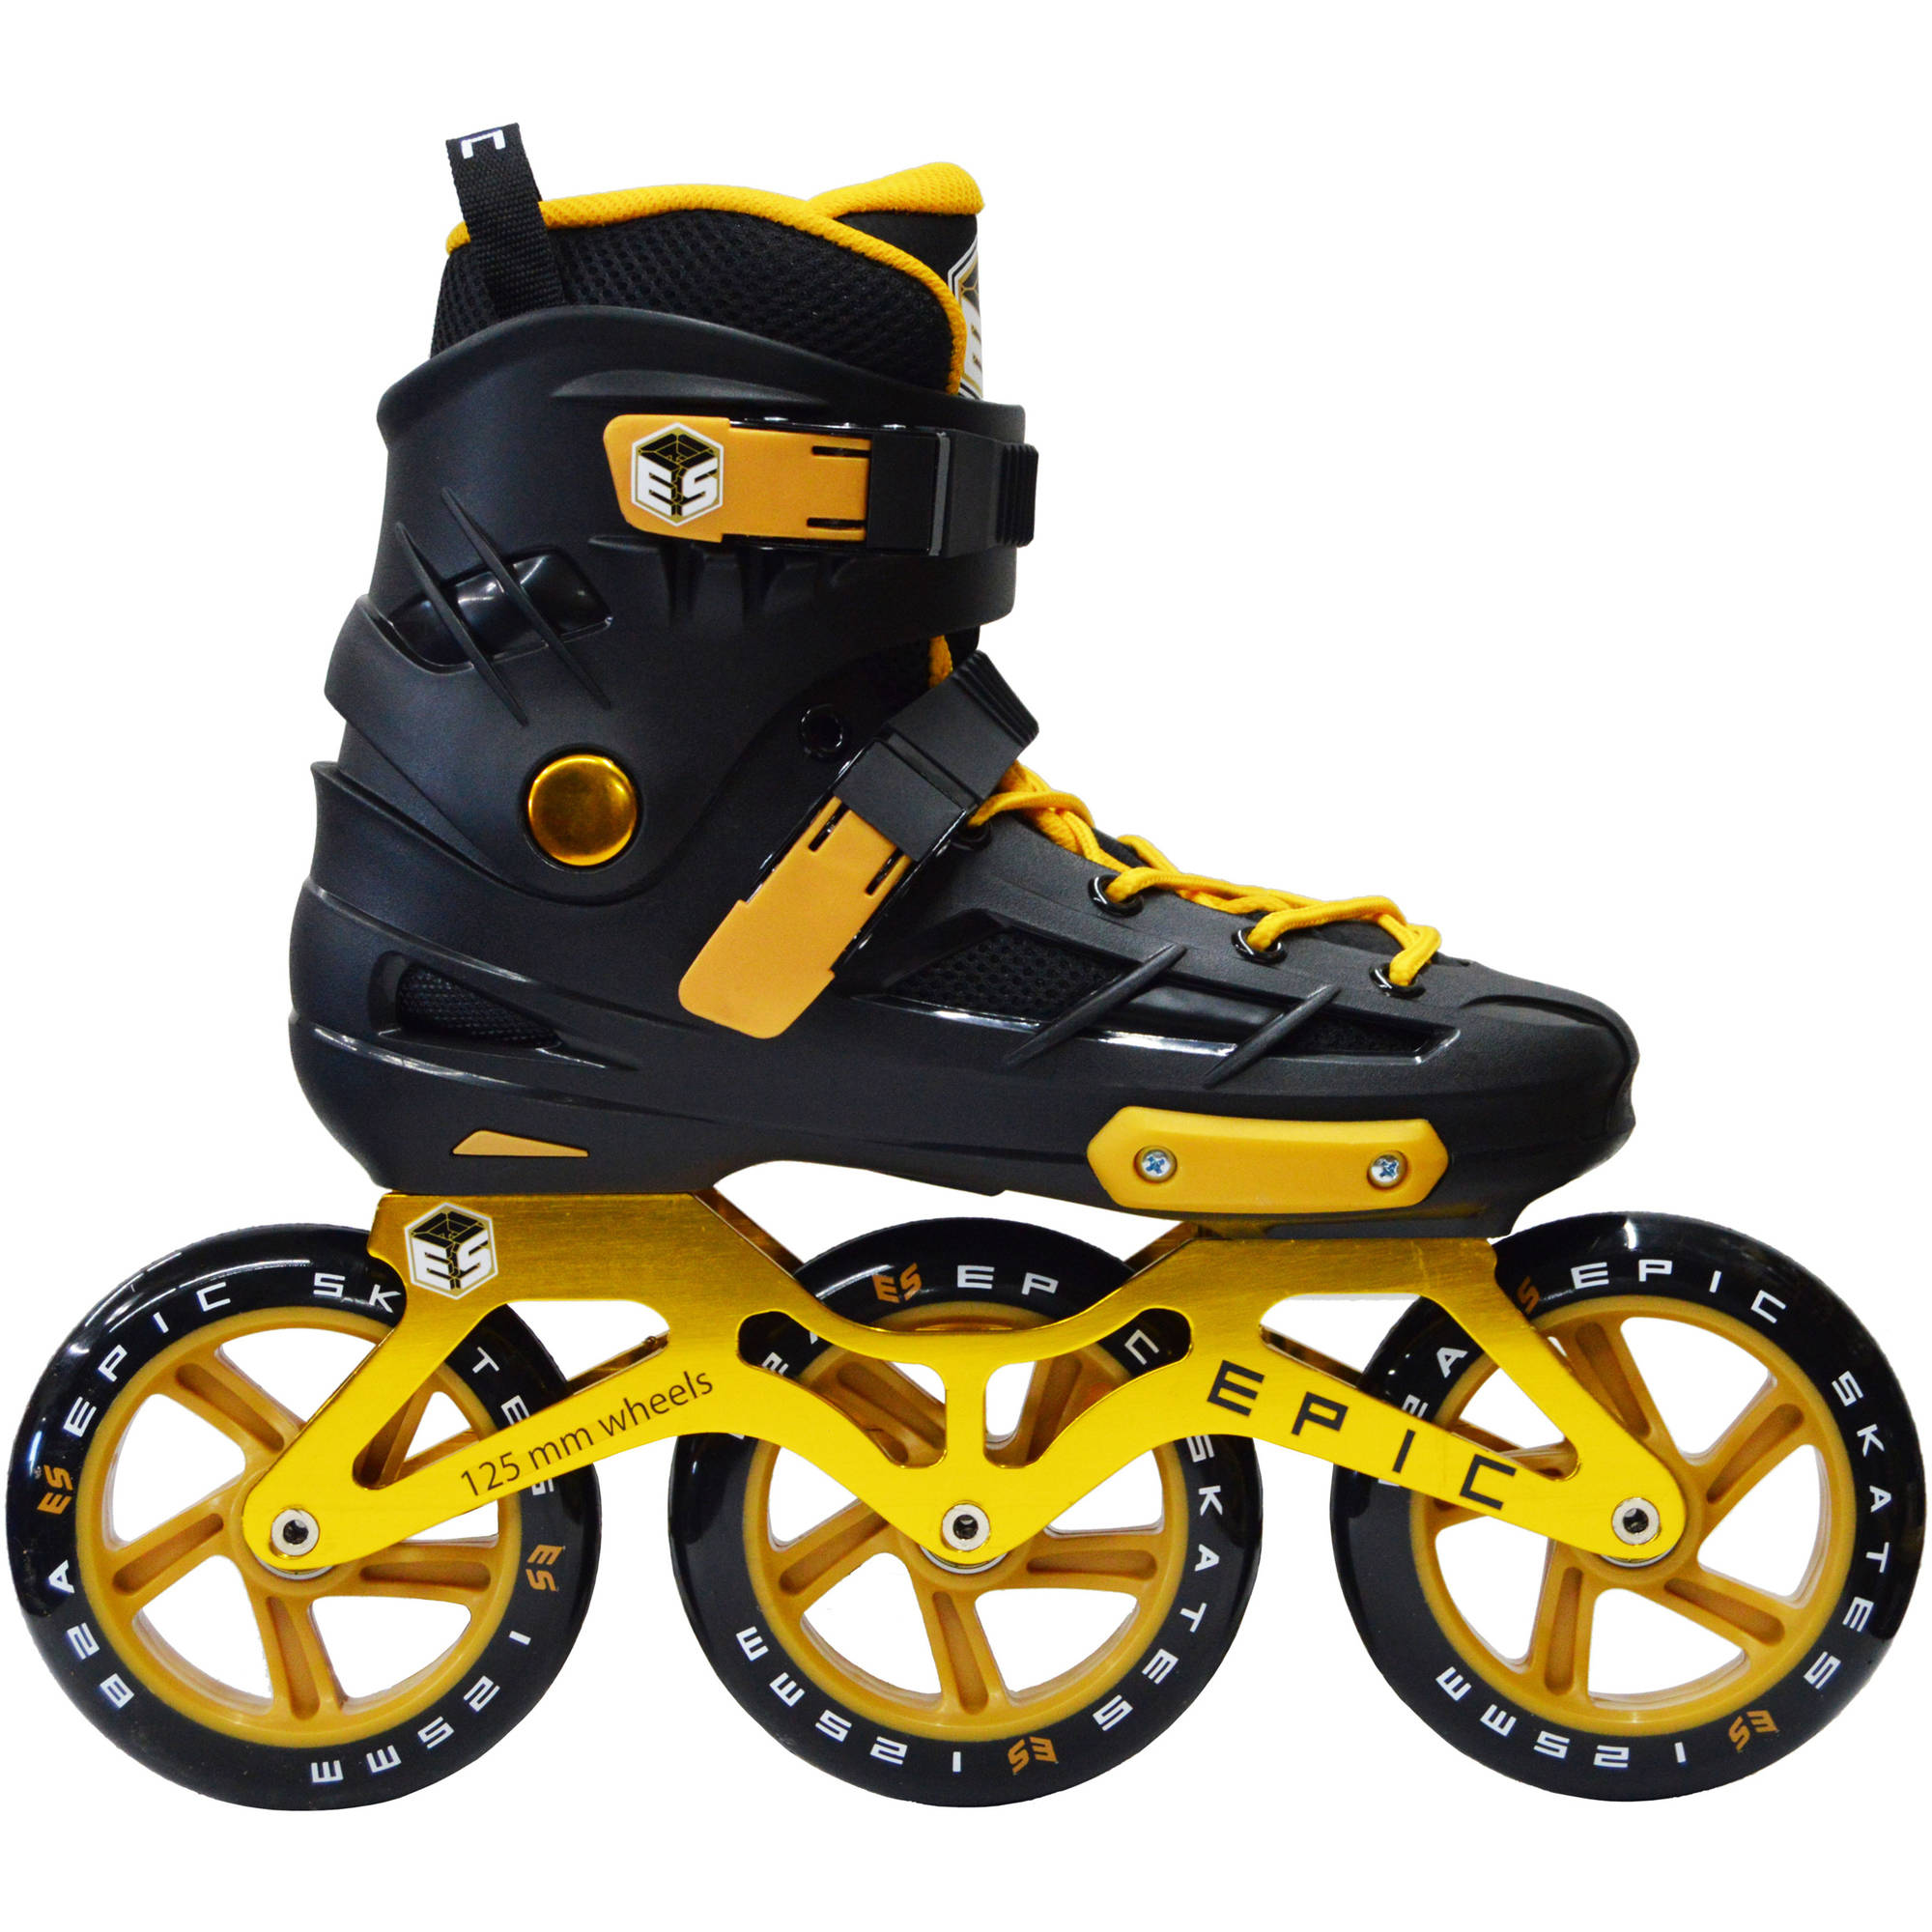 Epic Engage 125mm Indoor/Outdoor Inline Skates